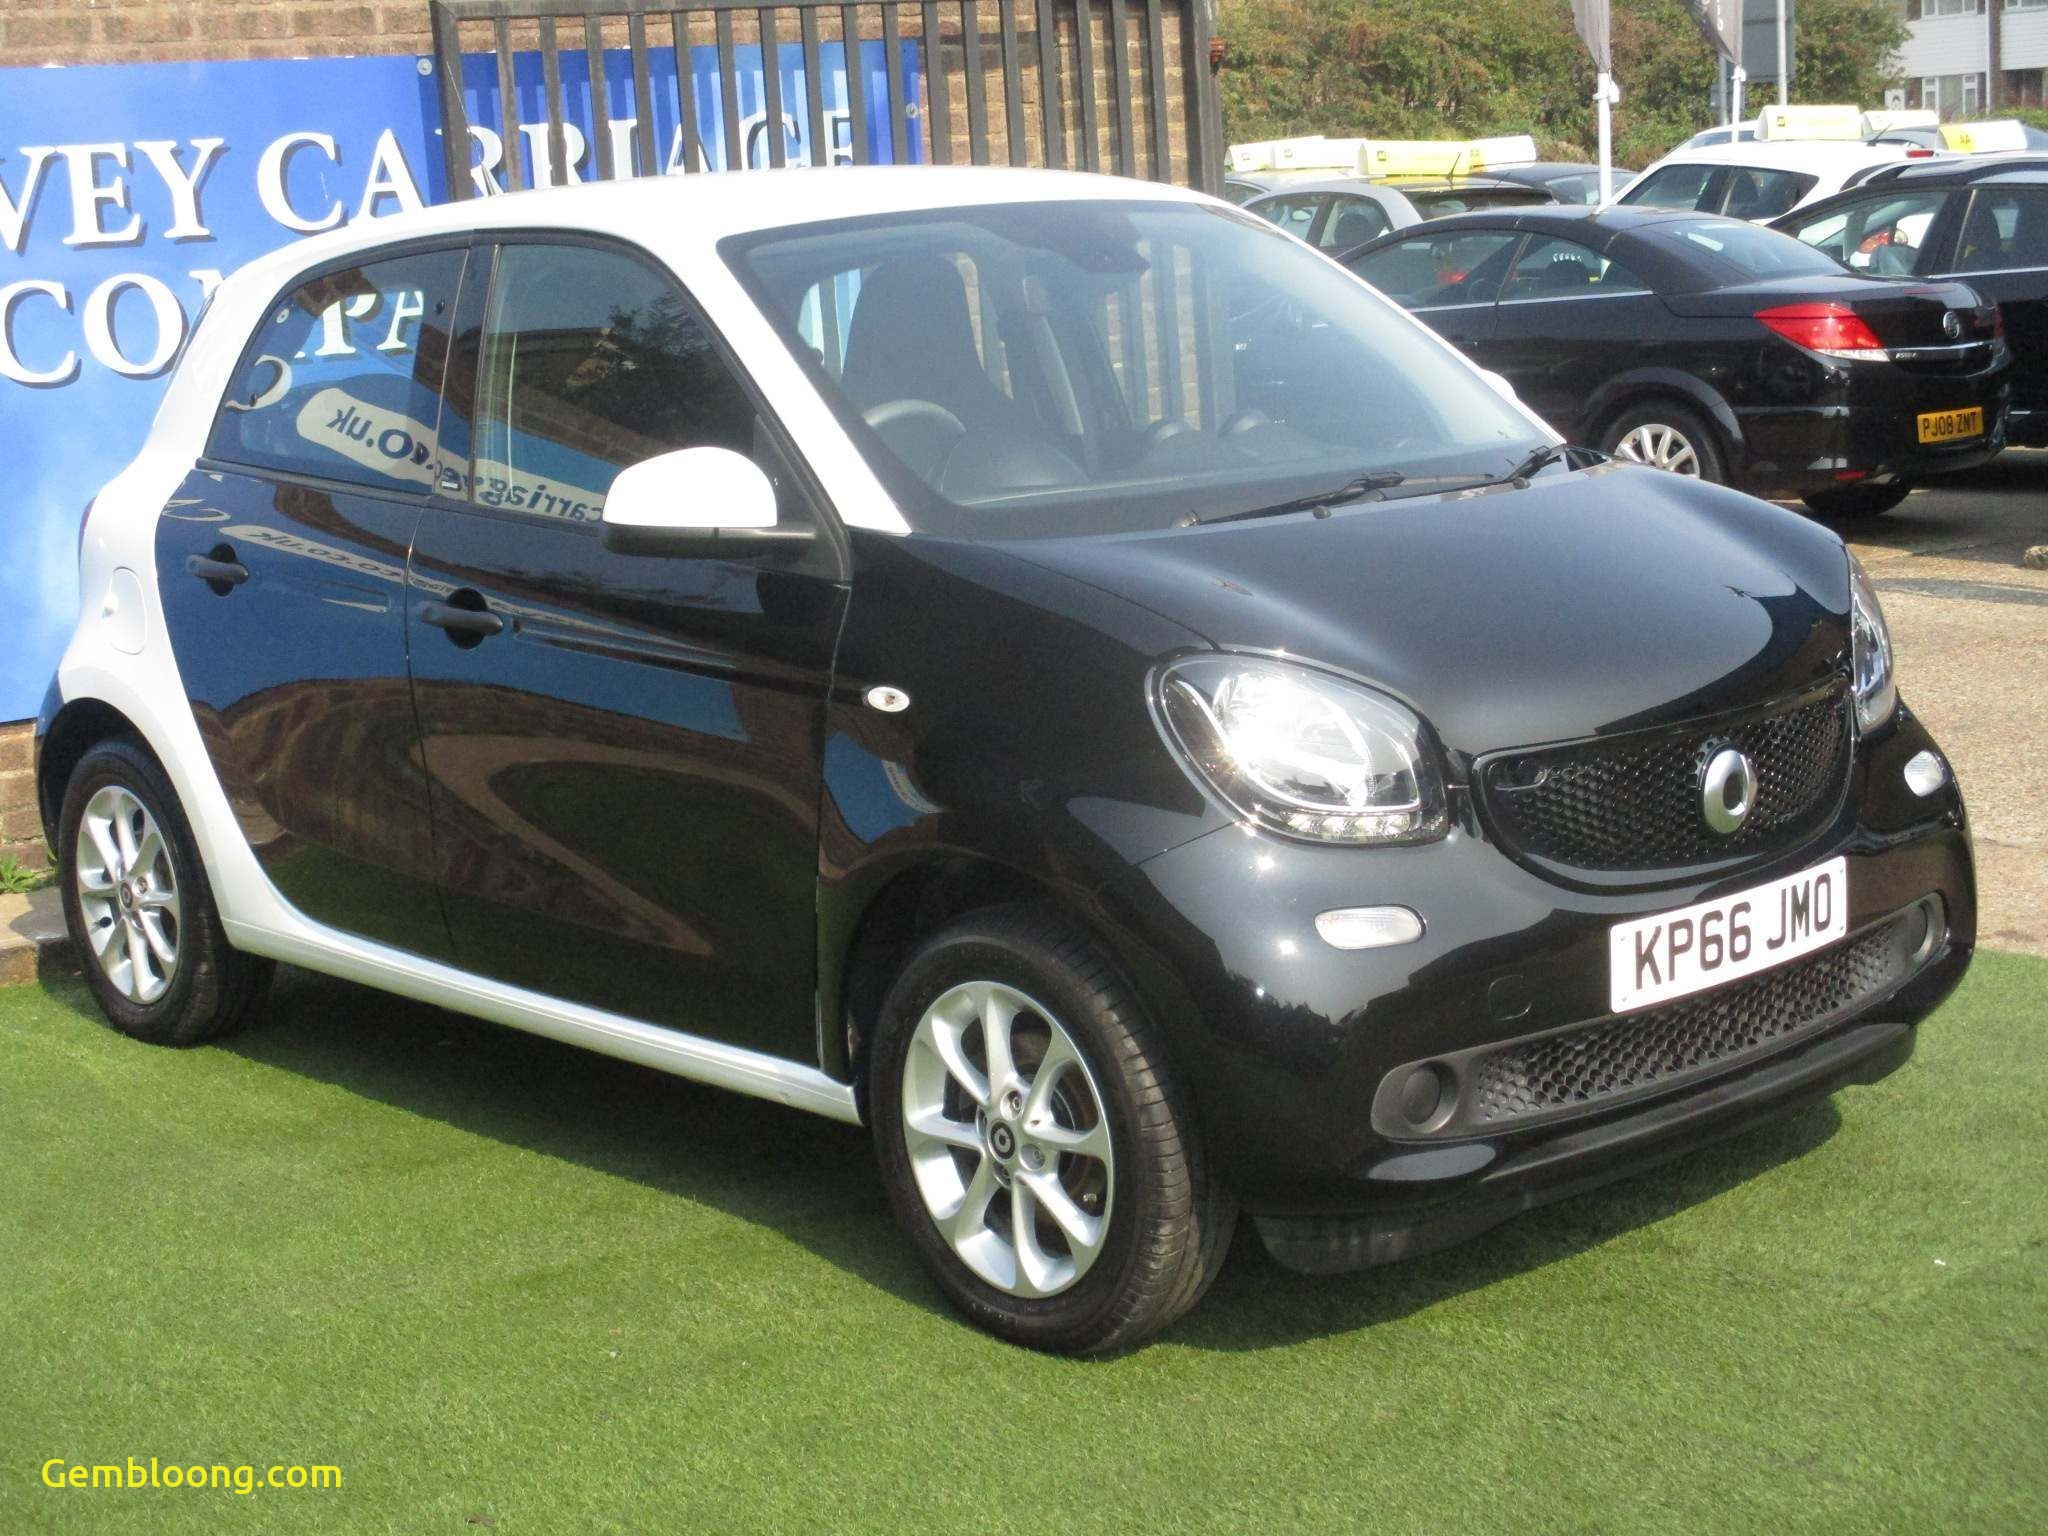 1.0 Cars for Sale Near Me Inspirational Used Smart Cars for Sale In Canvey island Es